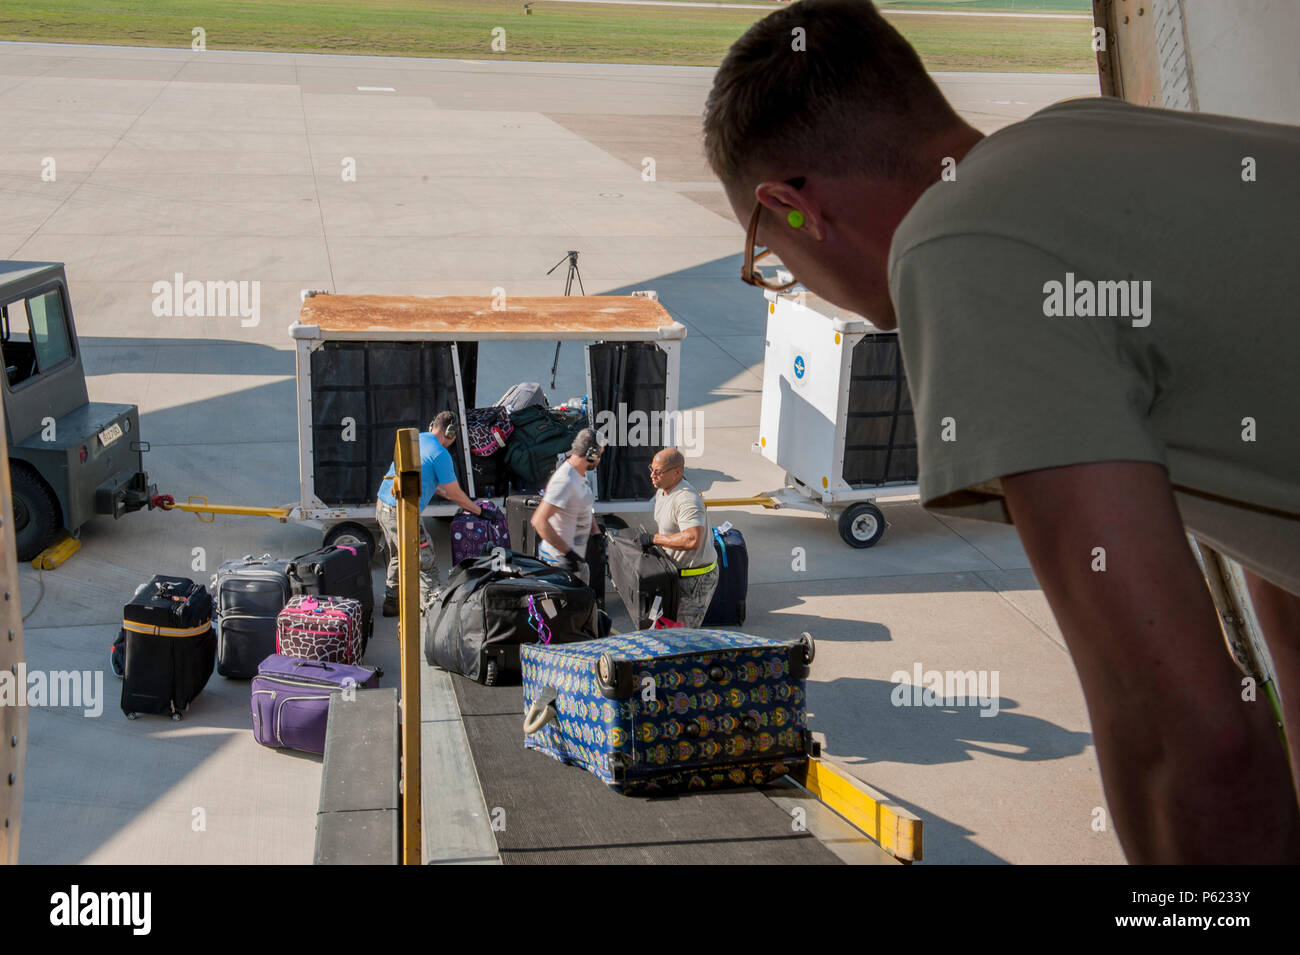 Members of the 728th Air Mobility Squadron load cargo April 1, 2016, at Incirlik Air Base, Turkey. Airmen from the 728th AMS built, staged and transported luggage to load in an aircraft to aid in the process of an ordered departure. (U.S. Air Force photo by Staff Sgt. Jack Sanders/Released) - Stock Image